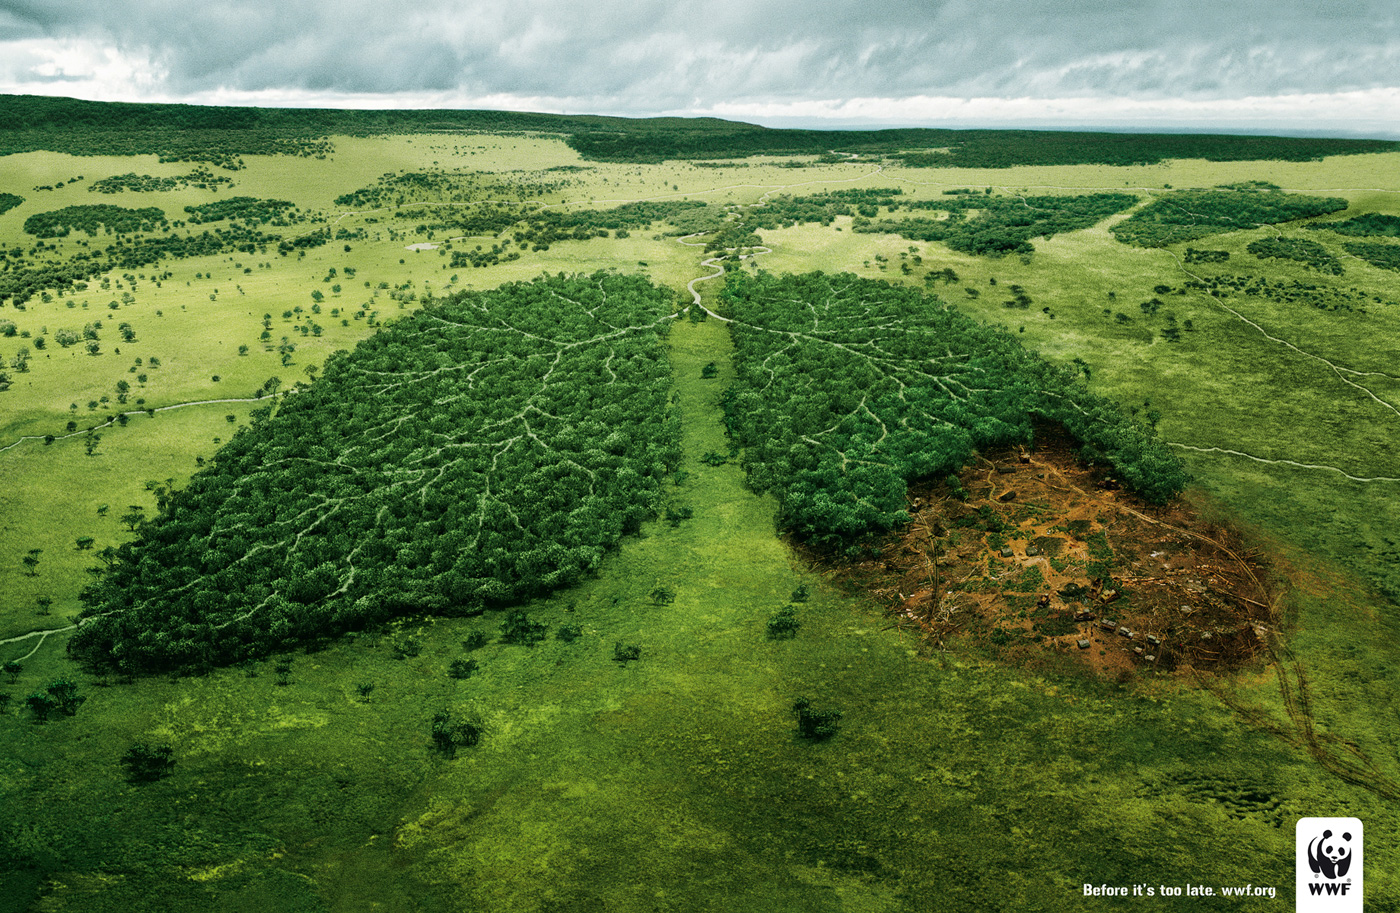 wwf_lungs